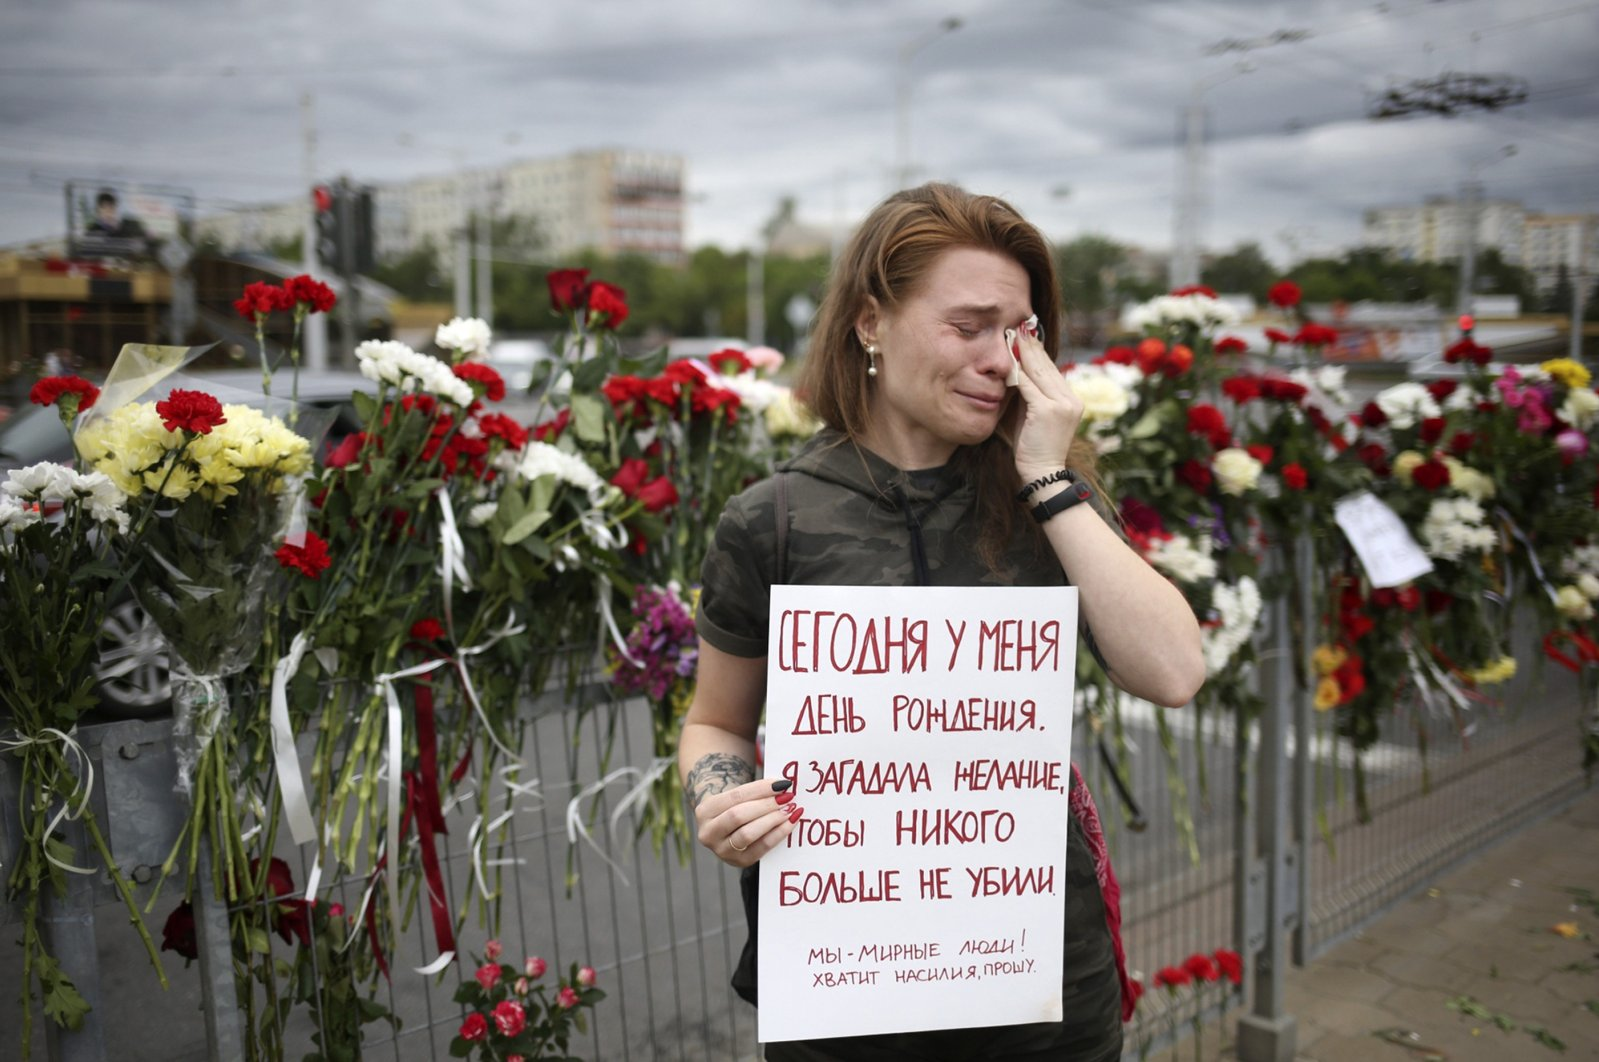 """Alina Krus, 26, holds a poster at the place where a protester died amid the clashes in Minsk, Belarus, Wednesday, Aug. 12, 2020 saying """"It's my birthday today. I made a wish that no one gets killed. We are peaceful people. Enough with the violence, please."""" (AP Photo)"""